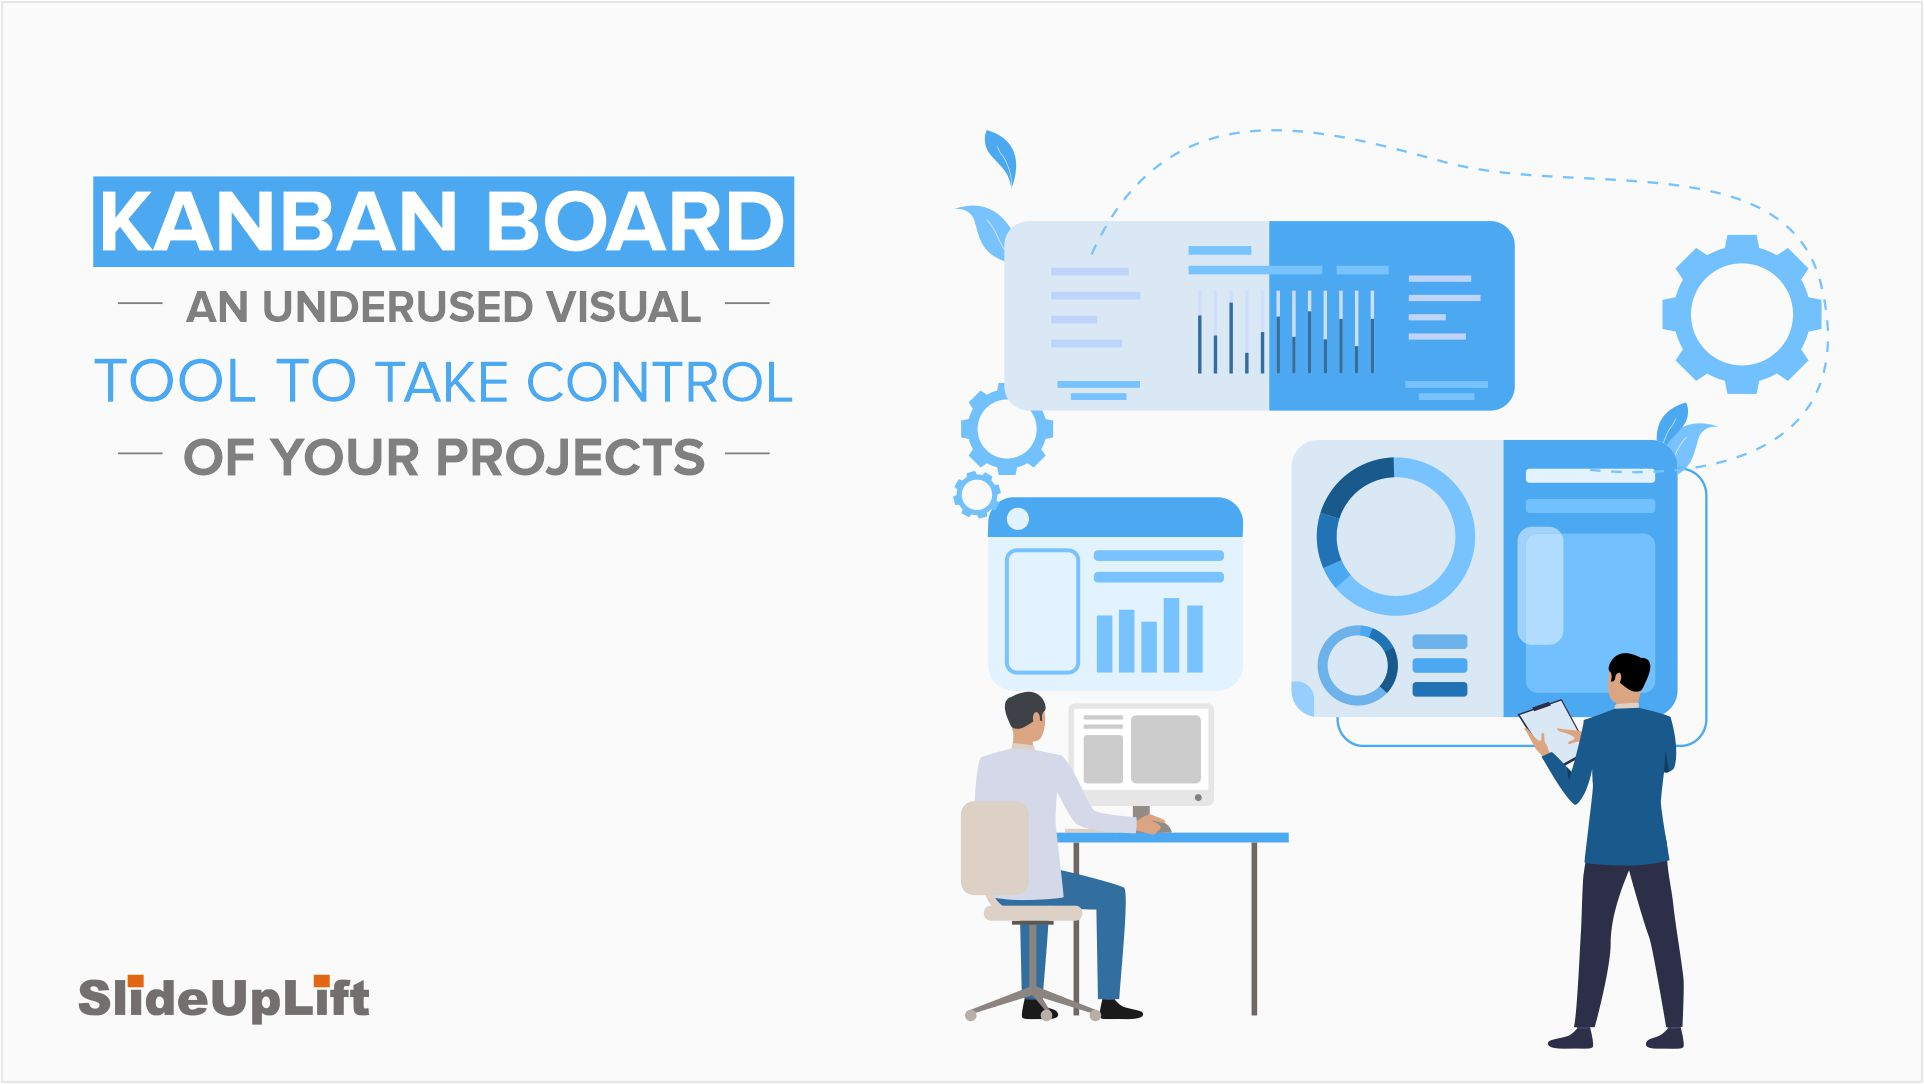 Kanban Board - An Underused Visual Tool to Take control of your projects